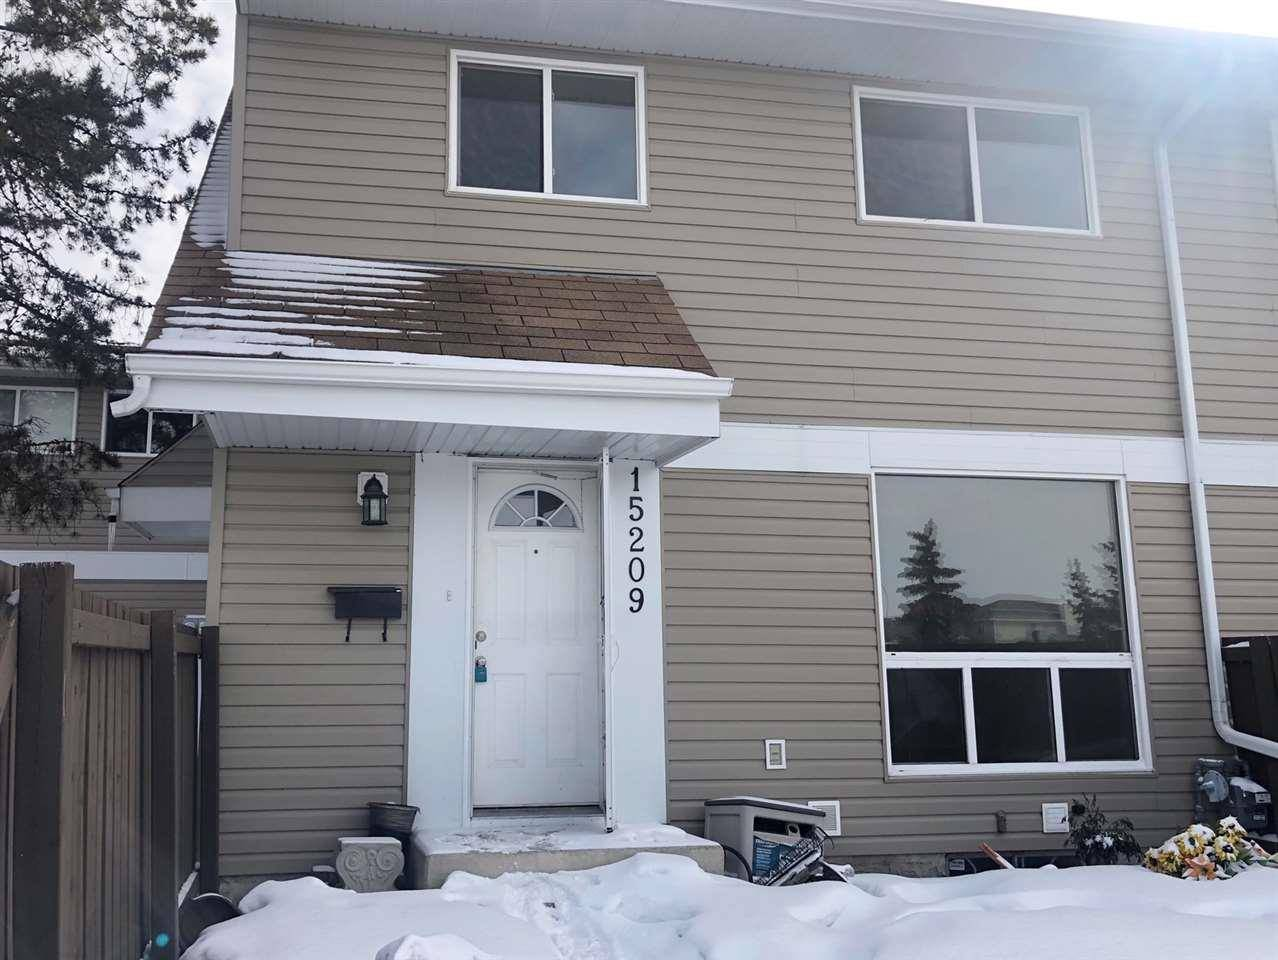 Townhouse for sale at 15209 54 St Nw Edmonton Alberta - MLS: E4192874